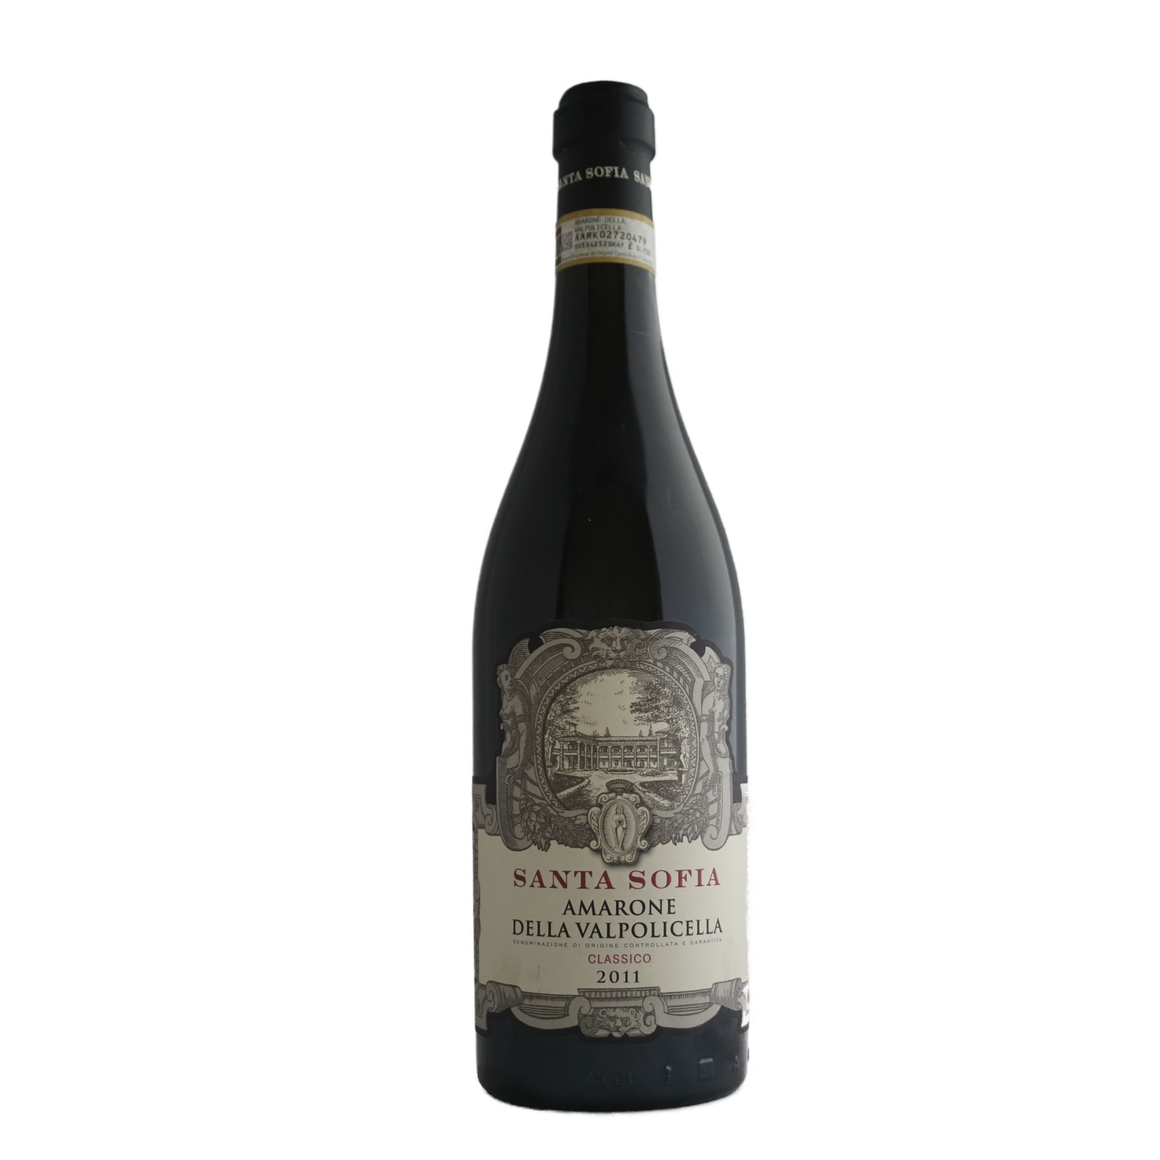 Amarone Classico DOC, Santa Sofia 2011 - Secret Cellar